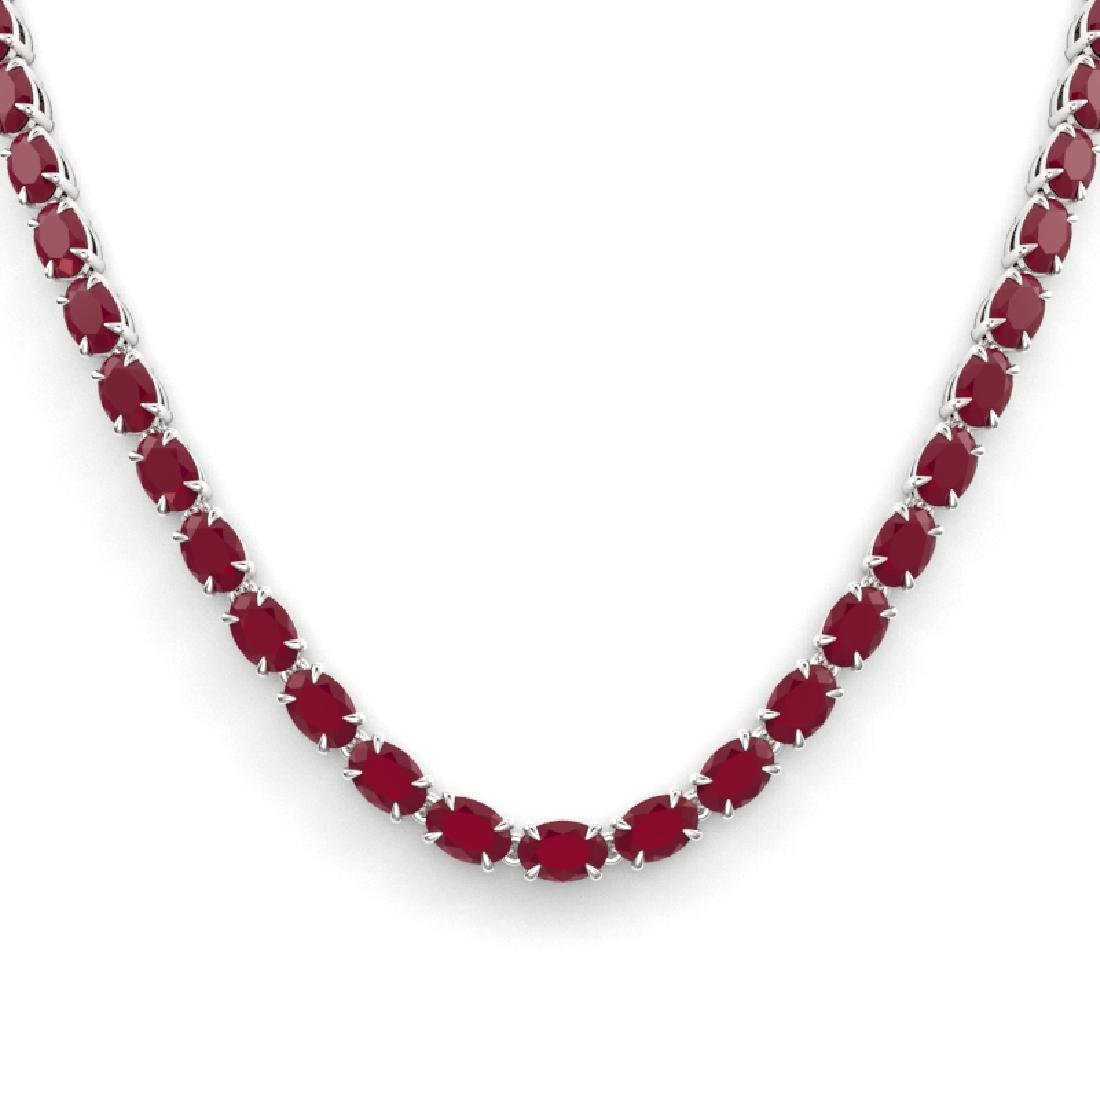 40 CTW Ruby Eternity Tennis Necklace 14K White Gold